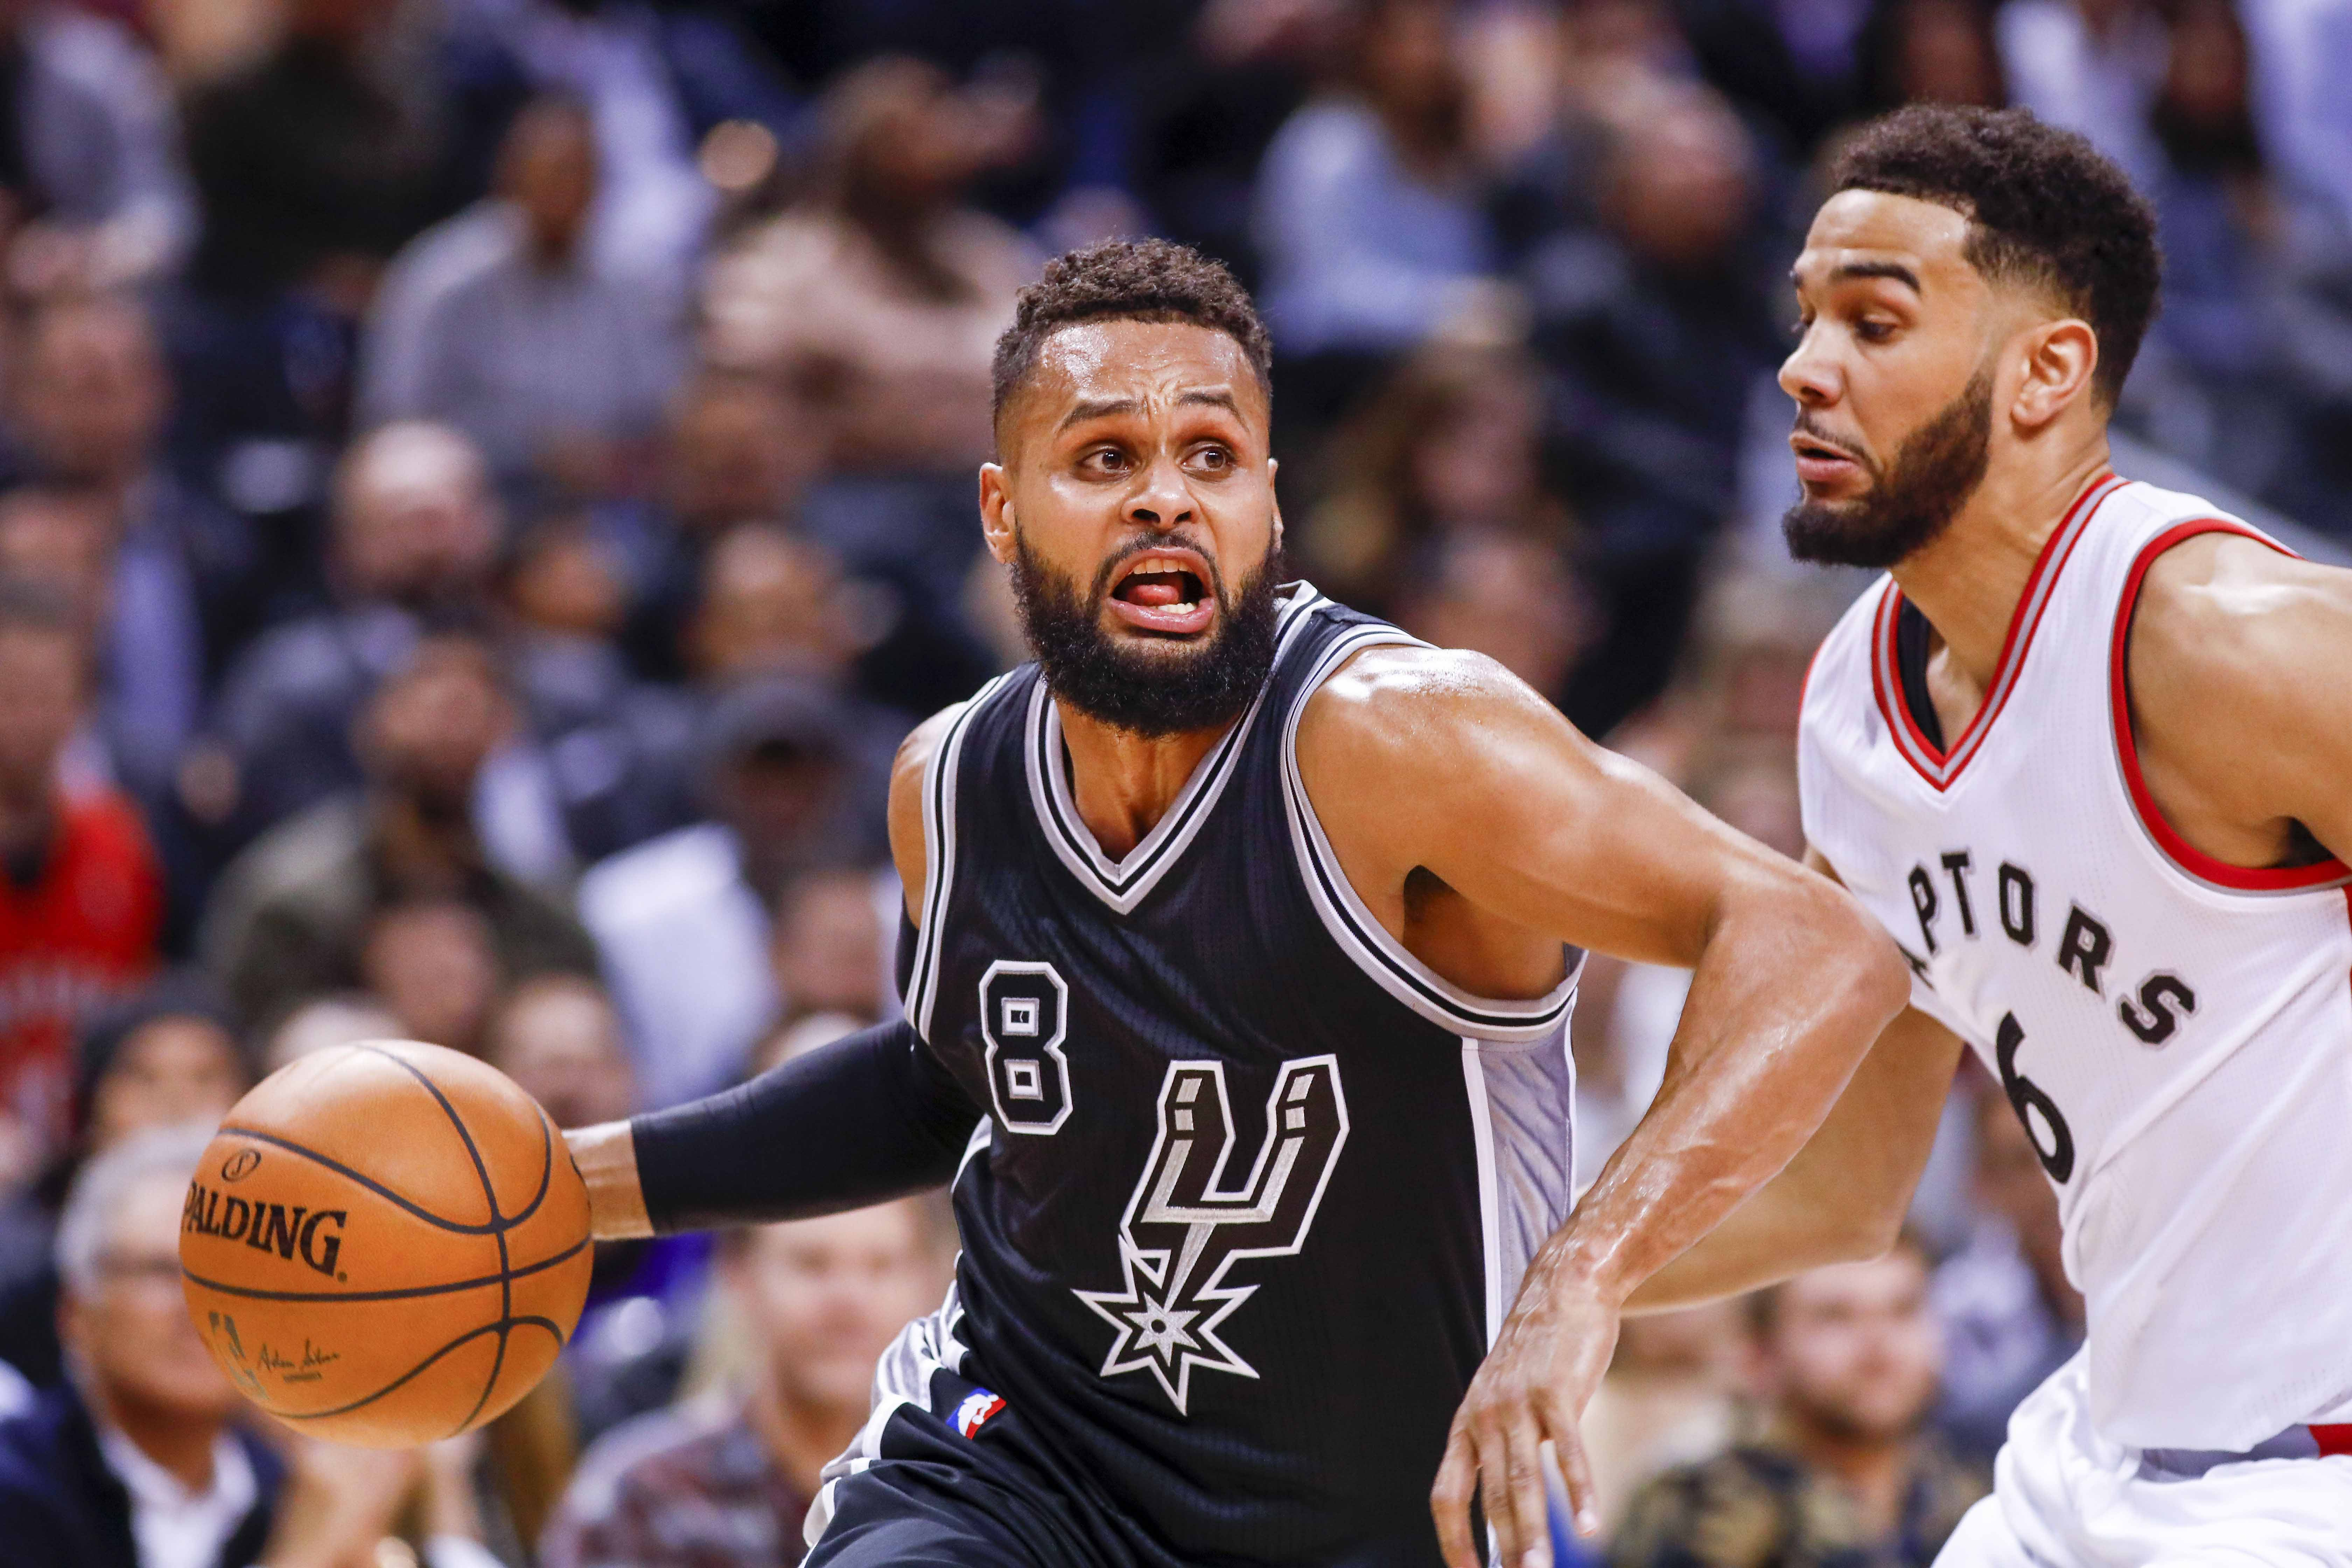 Jan 24, 2017; Toronto, Ontario, CAN; San Antonio Spurs guard Patty Mills (8) dribbles the all around Toronto Raptors guard Cory Joseph (6) in the second half at Air Canada Centre. Spurs defeat the Raptors 108-106. Mandatory Credit: Kevin Sousa-USA TODAY Sports